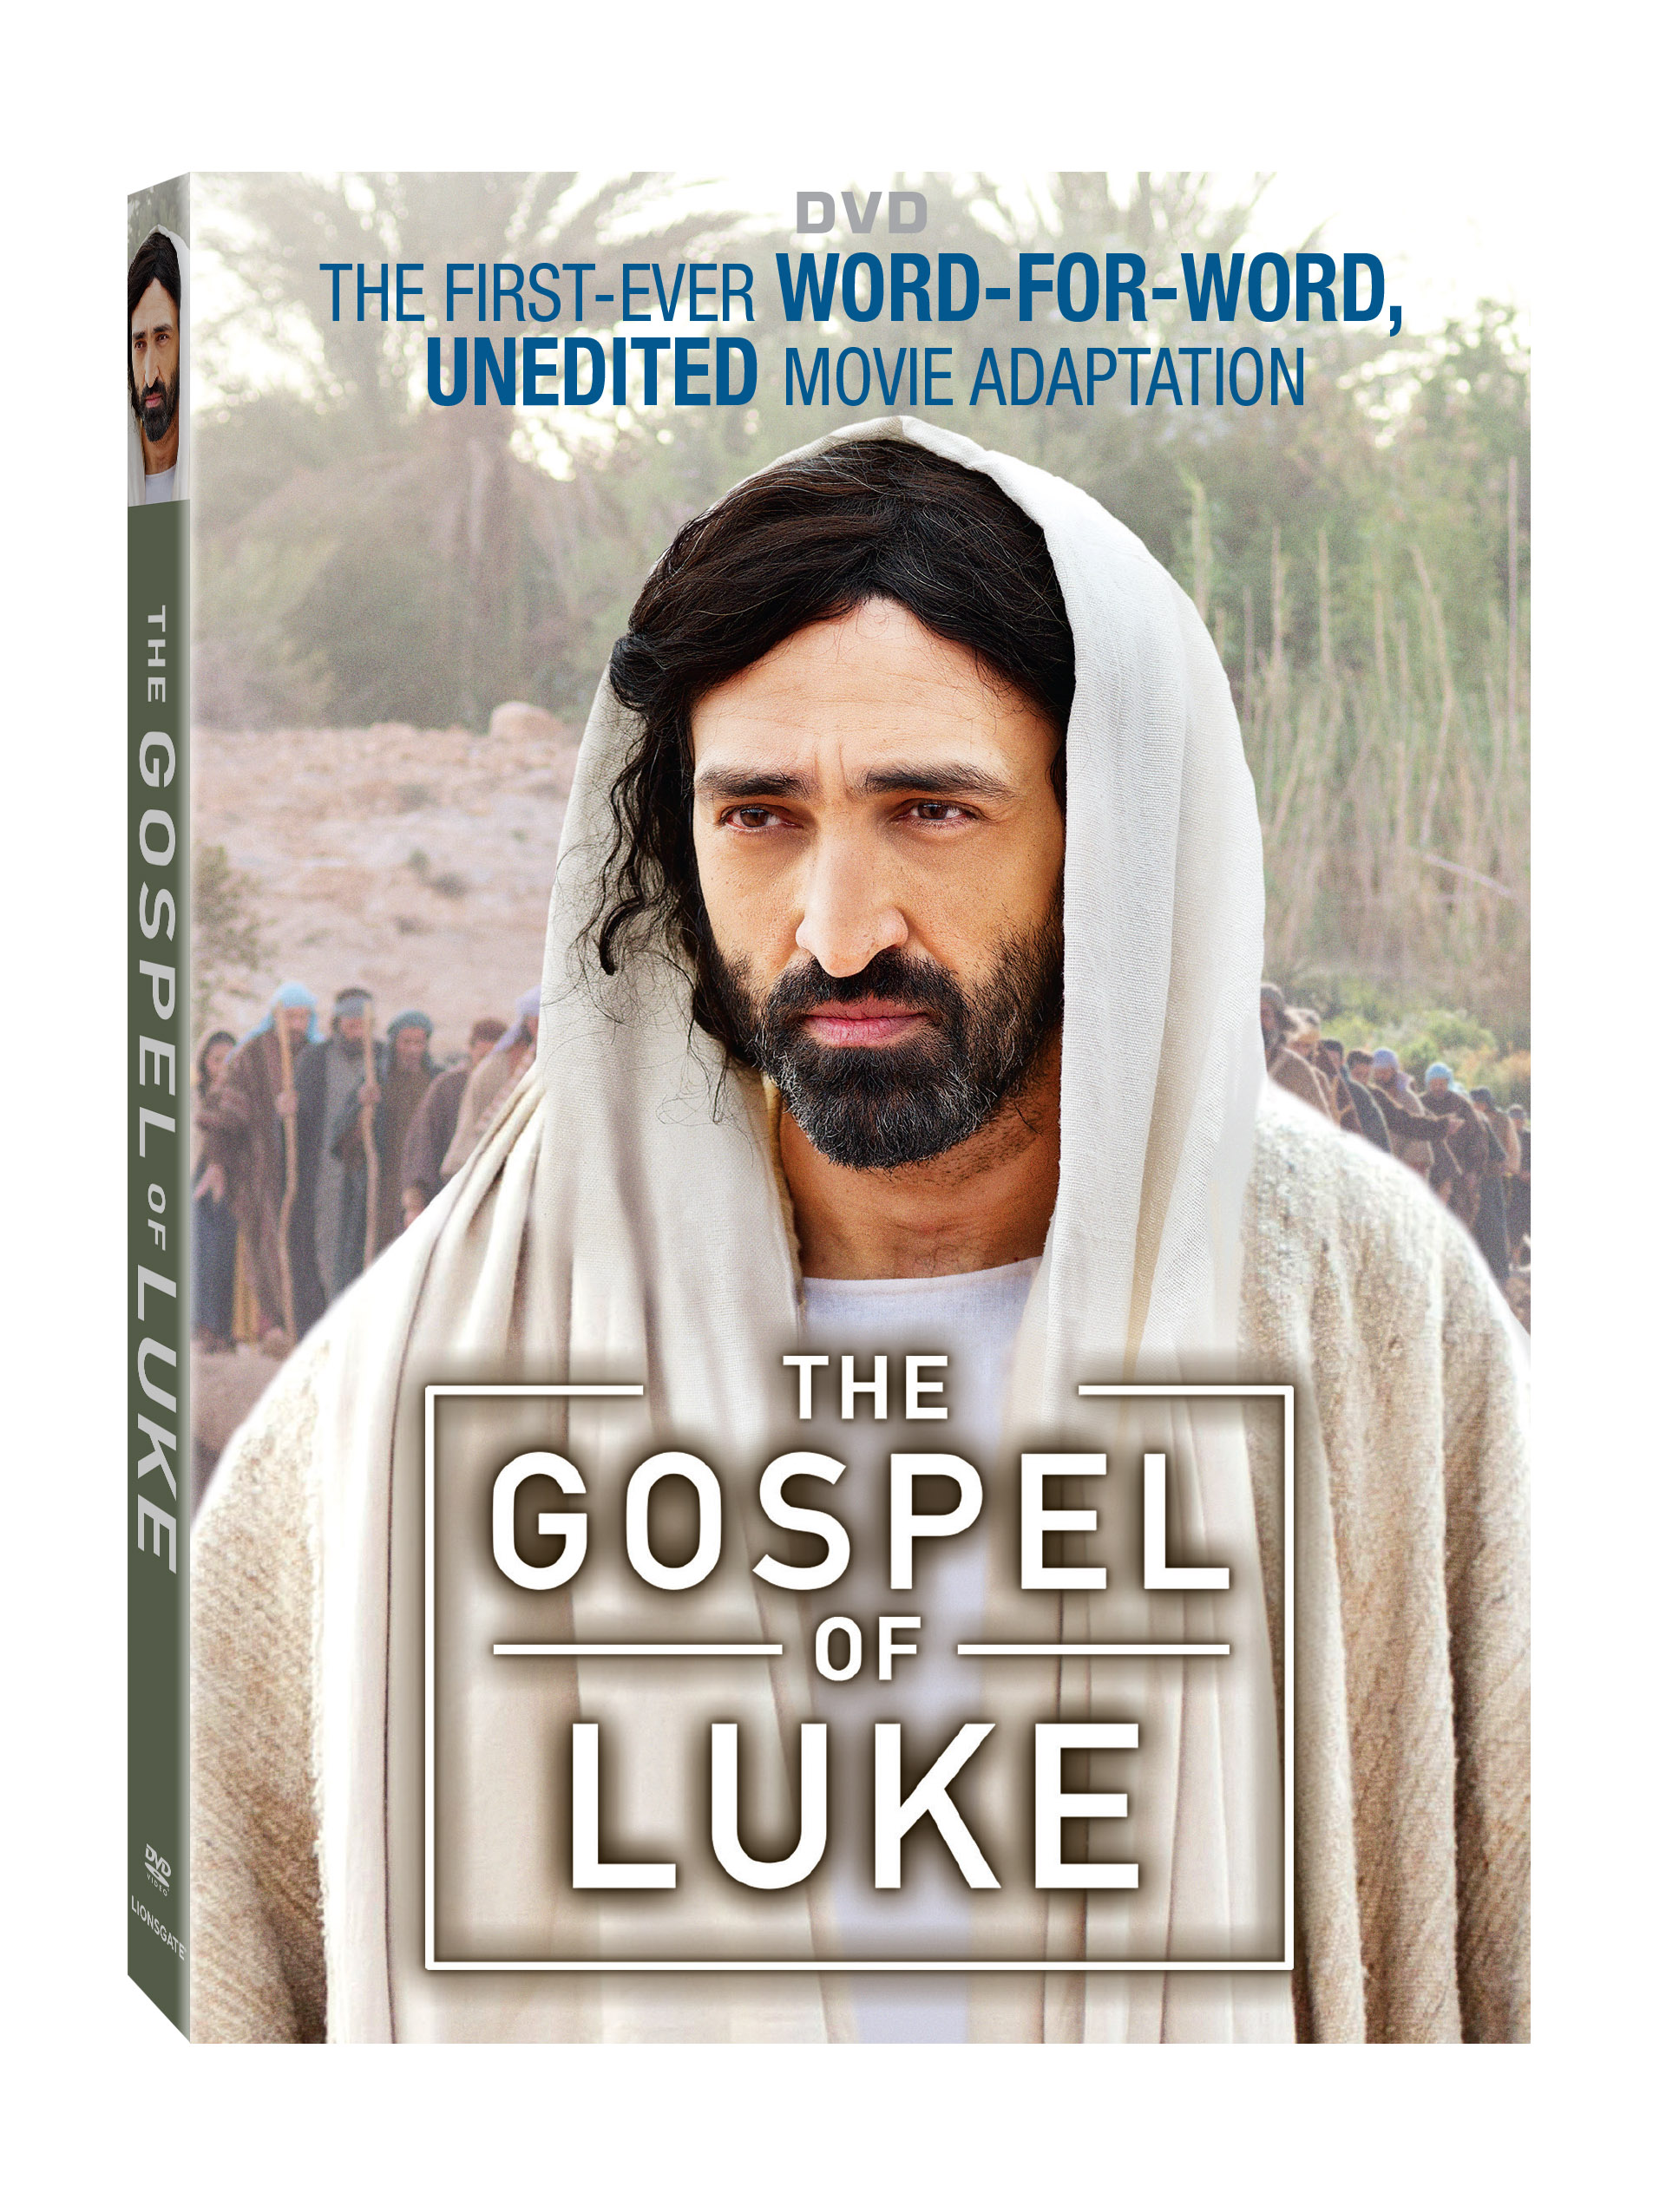 The Gospel of Luke on DVD is a word for word production shot on location.  Bring The Bible to life in your home! #ad #rwm #thegospelofluke